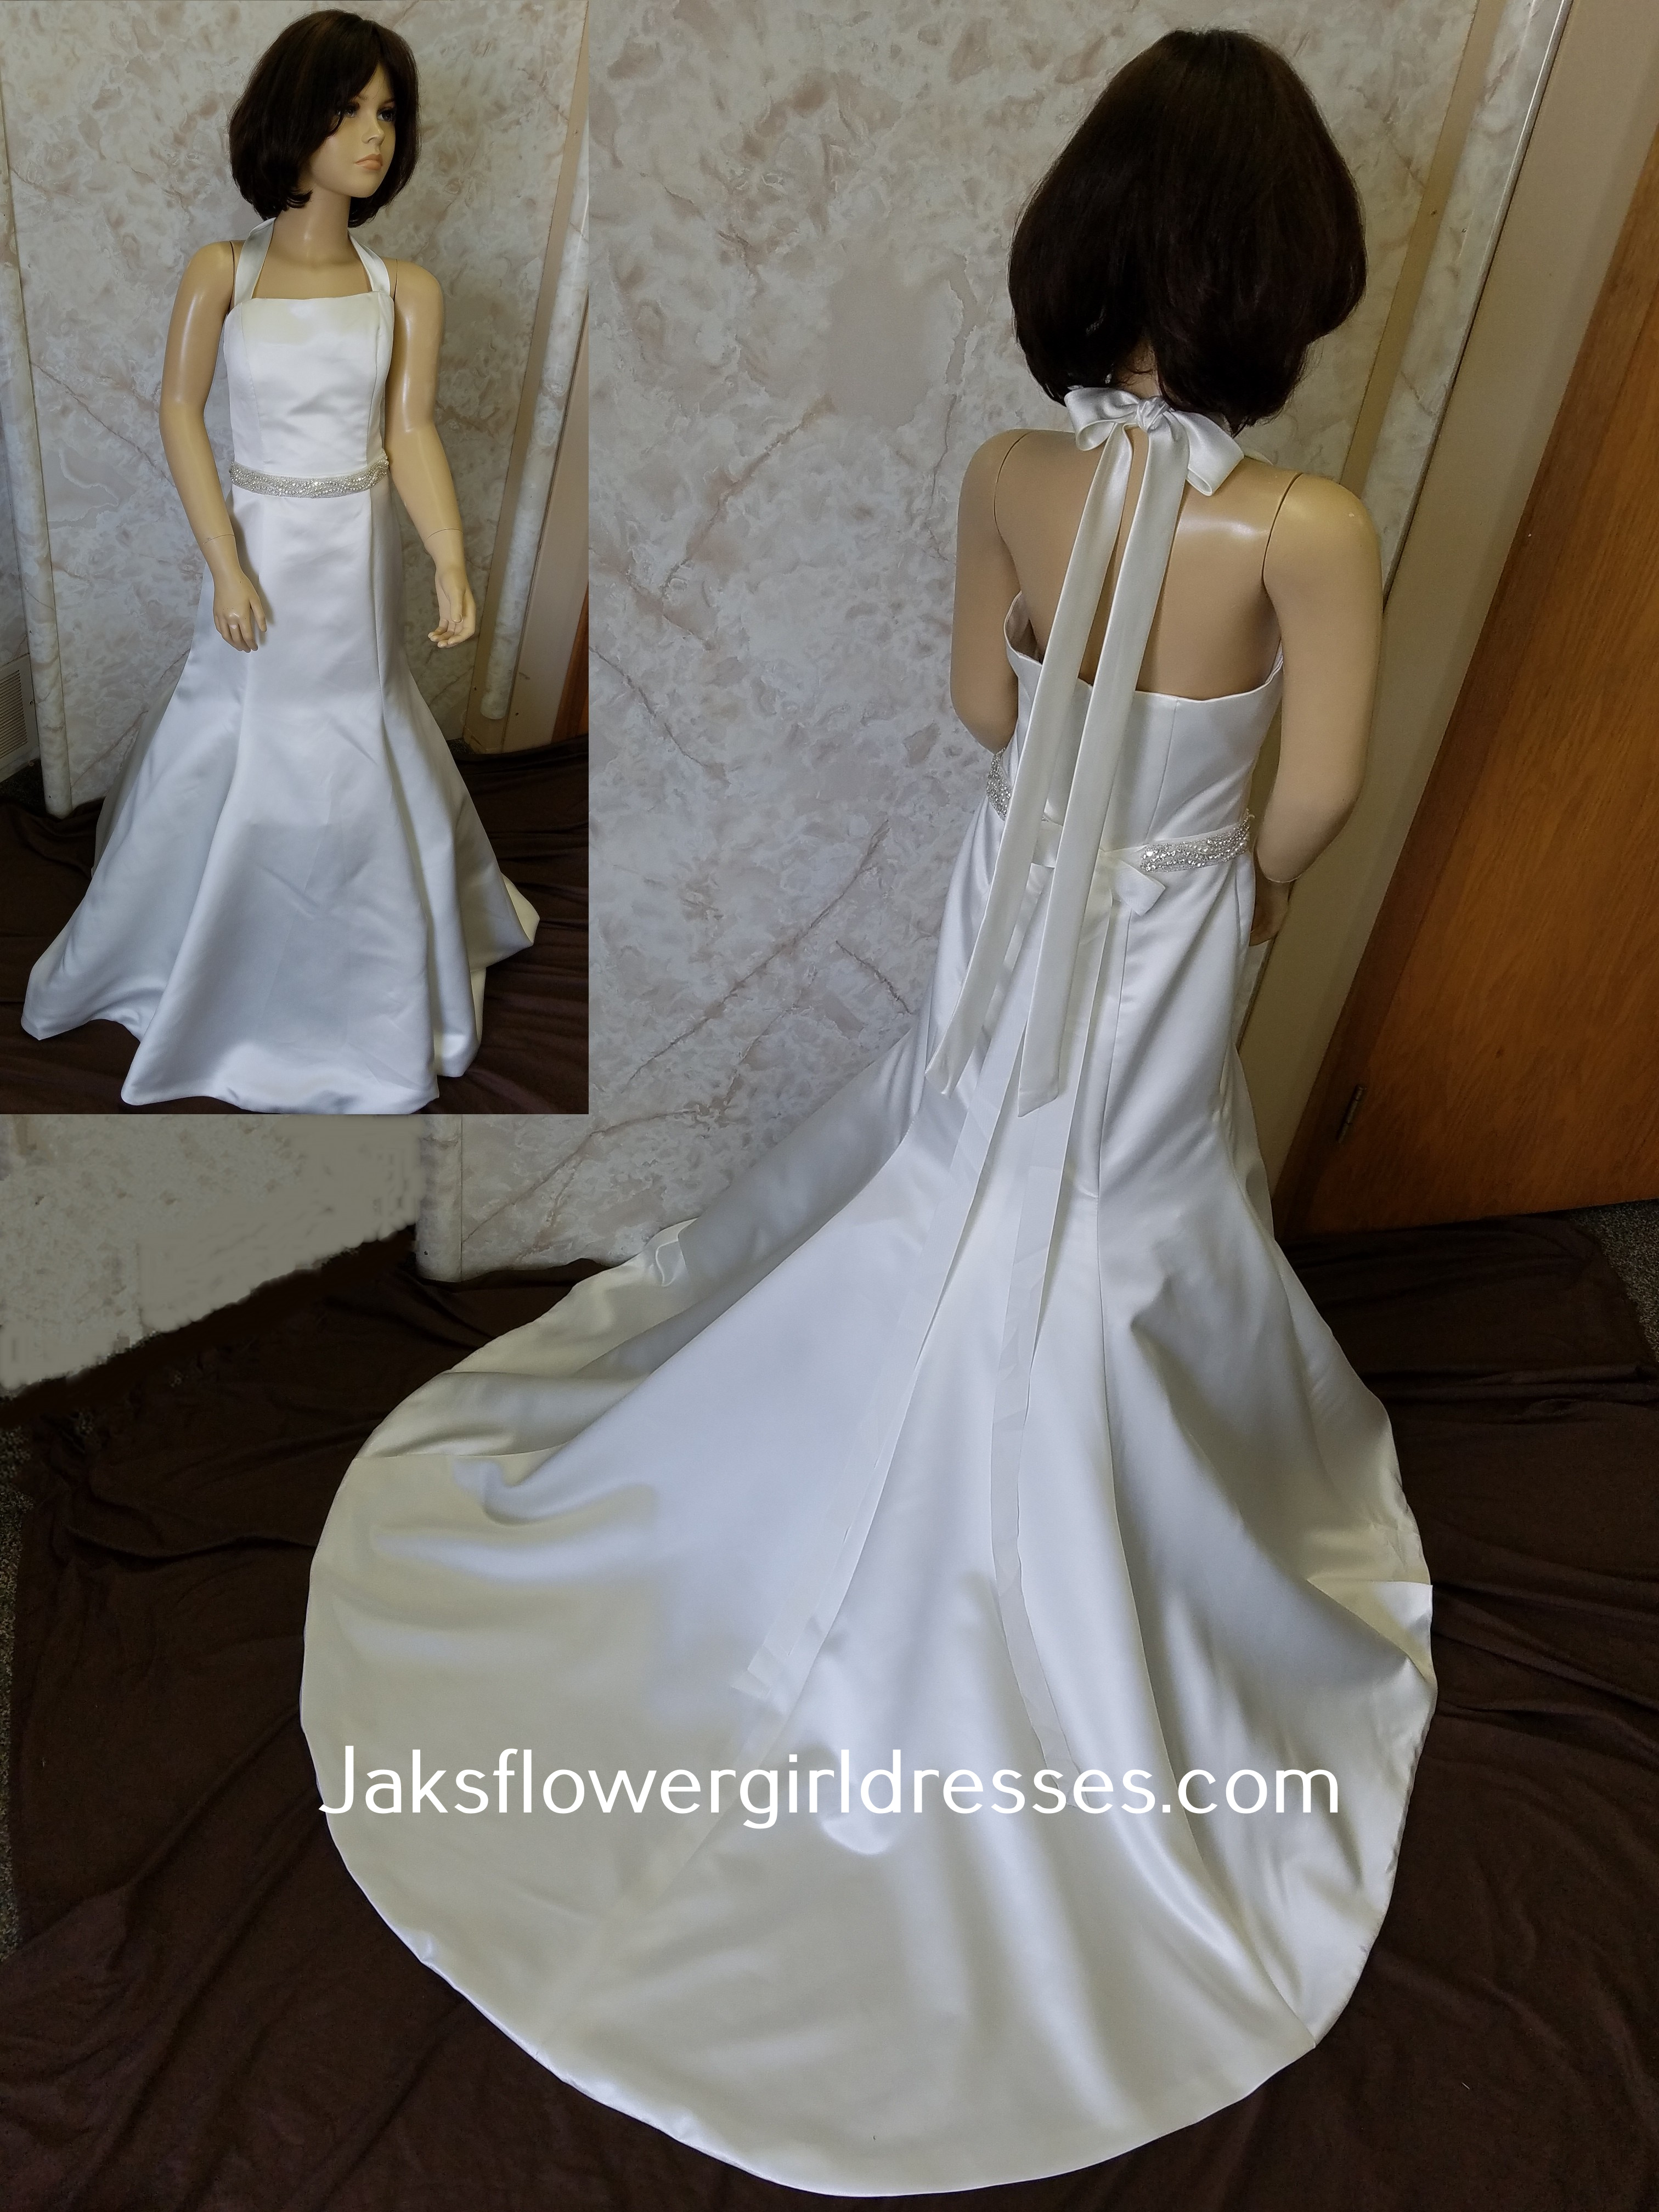 miniature bride trumpet gown